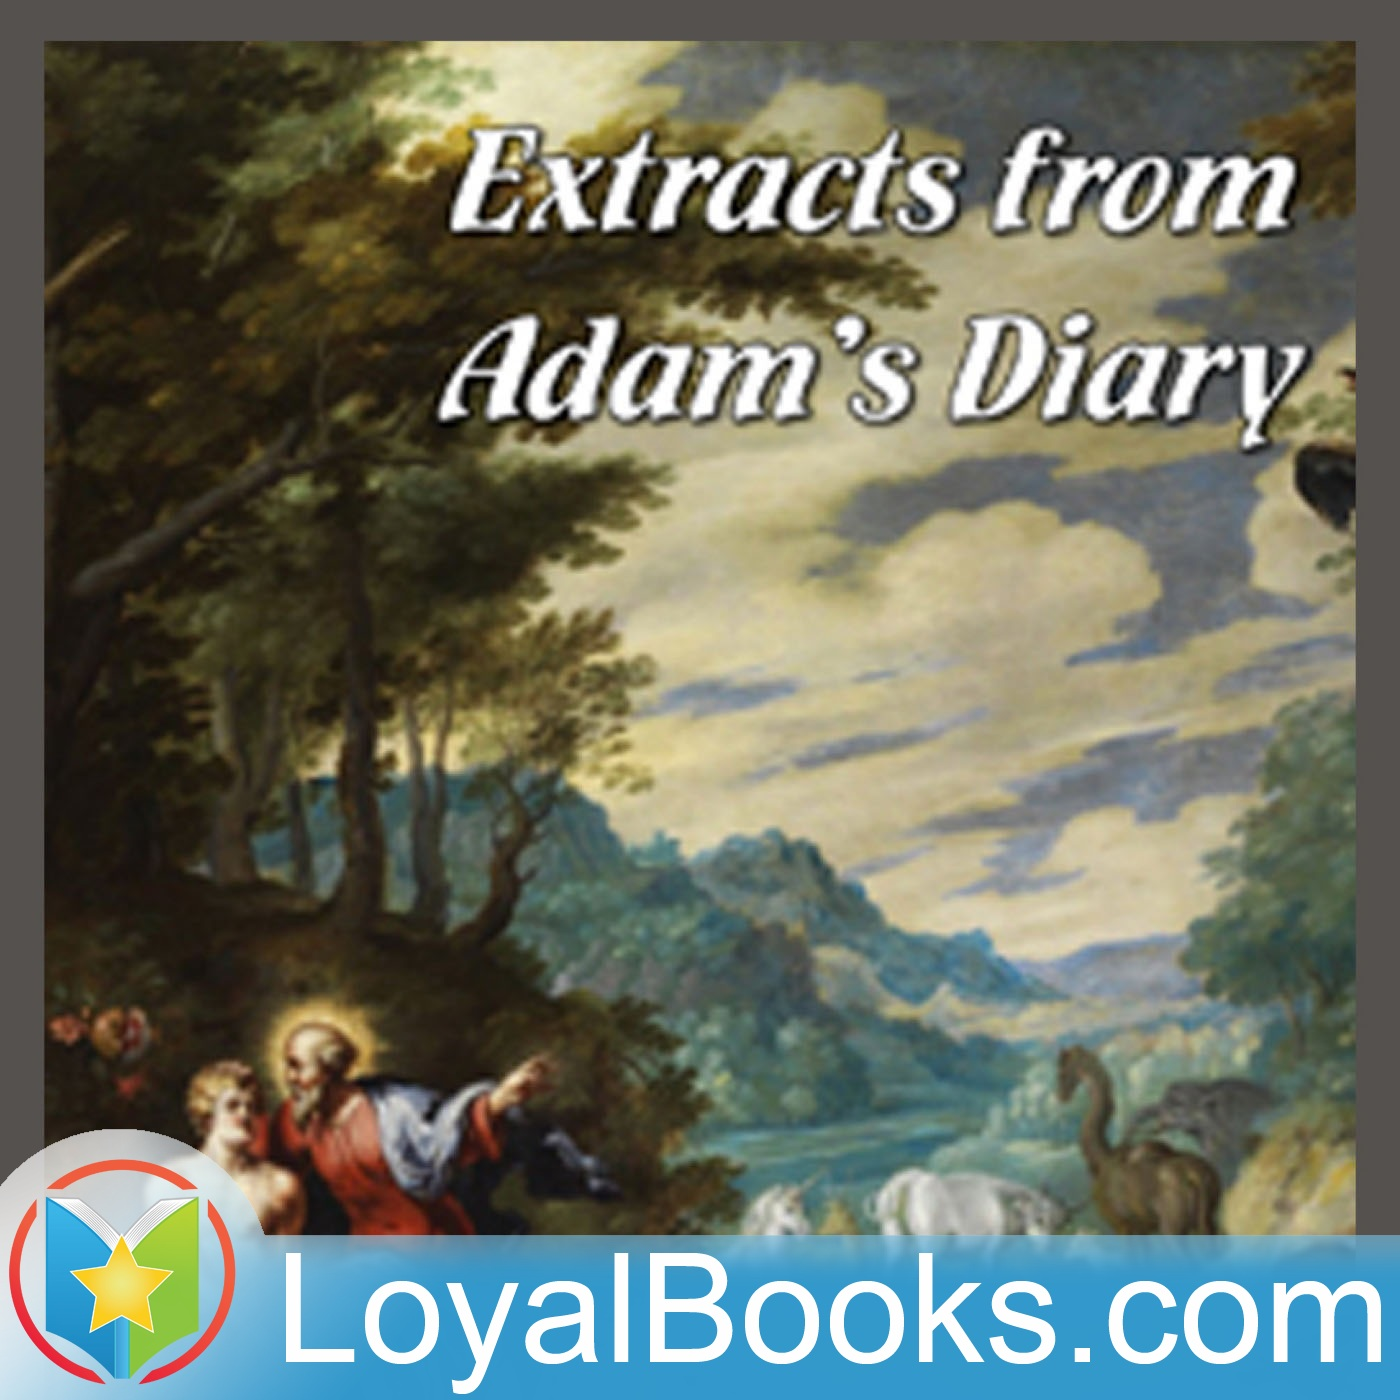 <![CDATA[Extracts from Adam's Diary by Mark Twain]]>